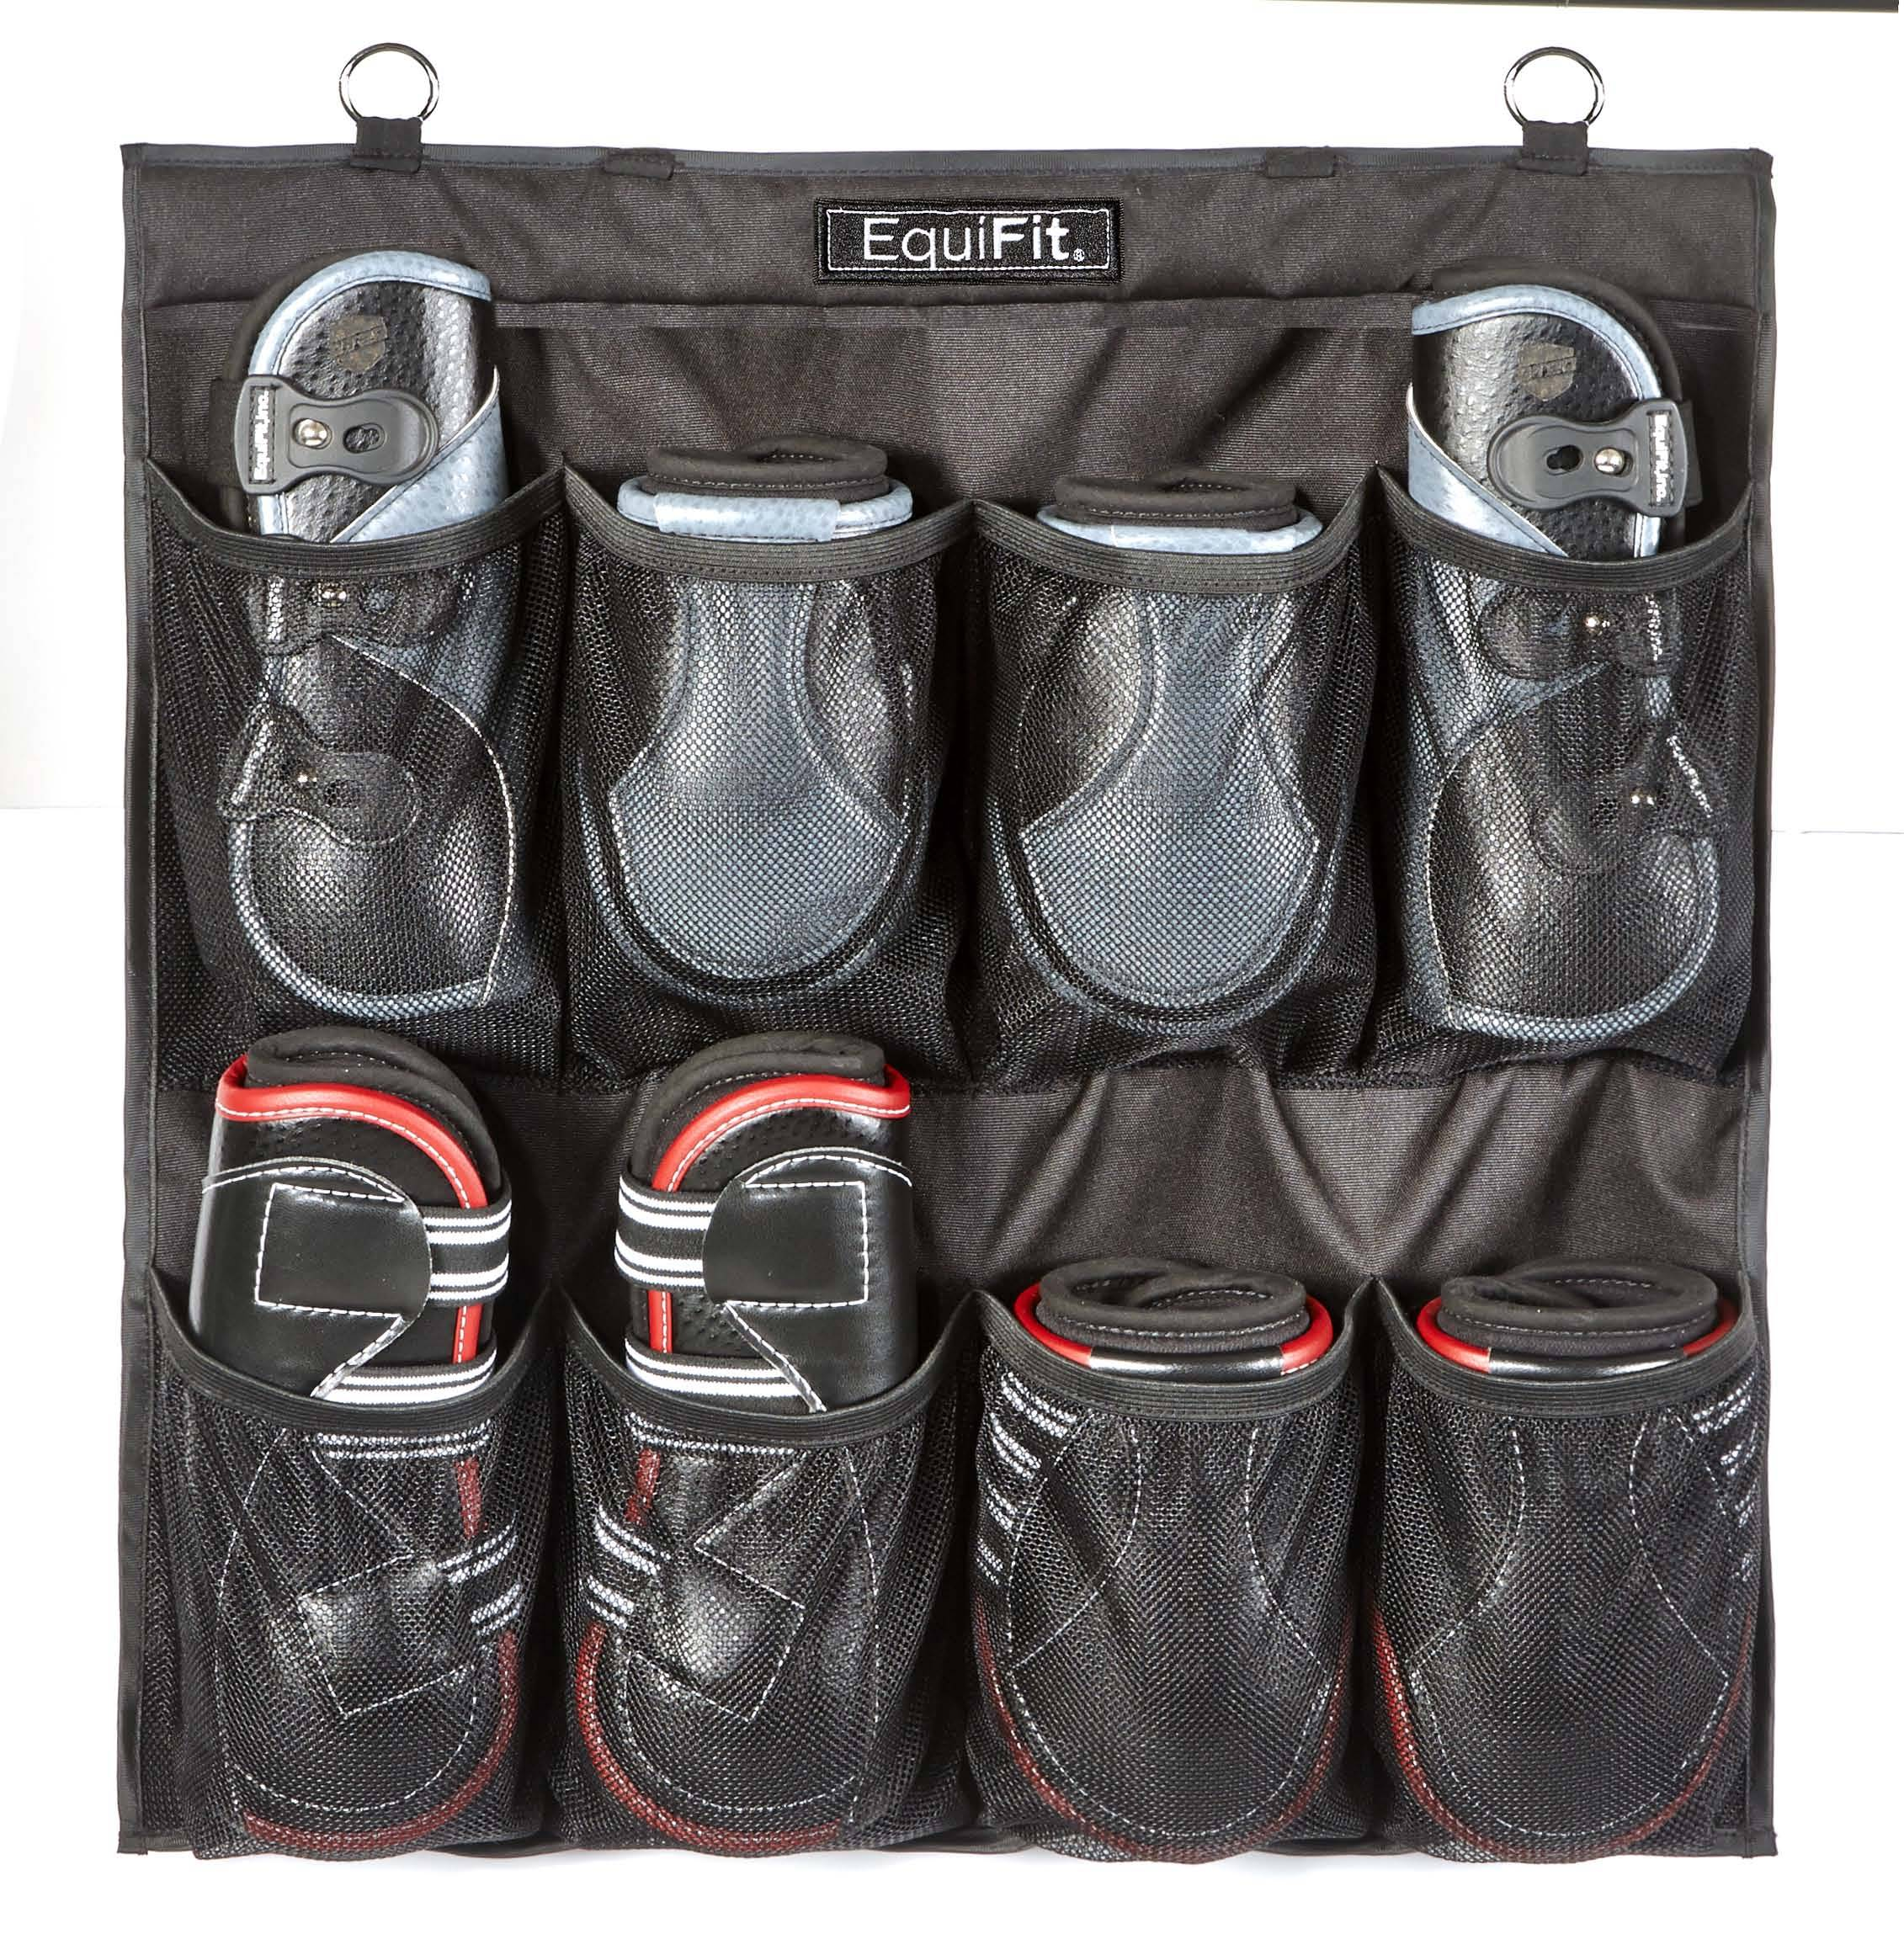 Equifit Hanging Boot Organizer - 8 Pockets